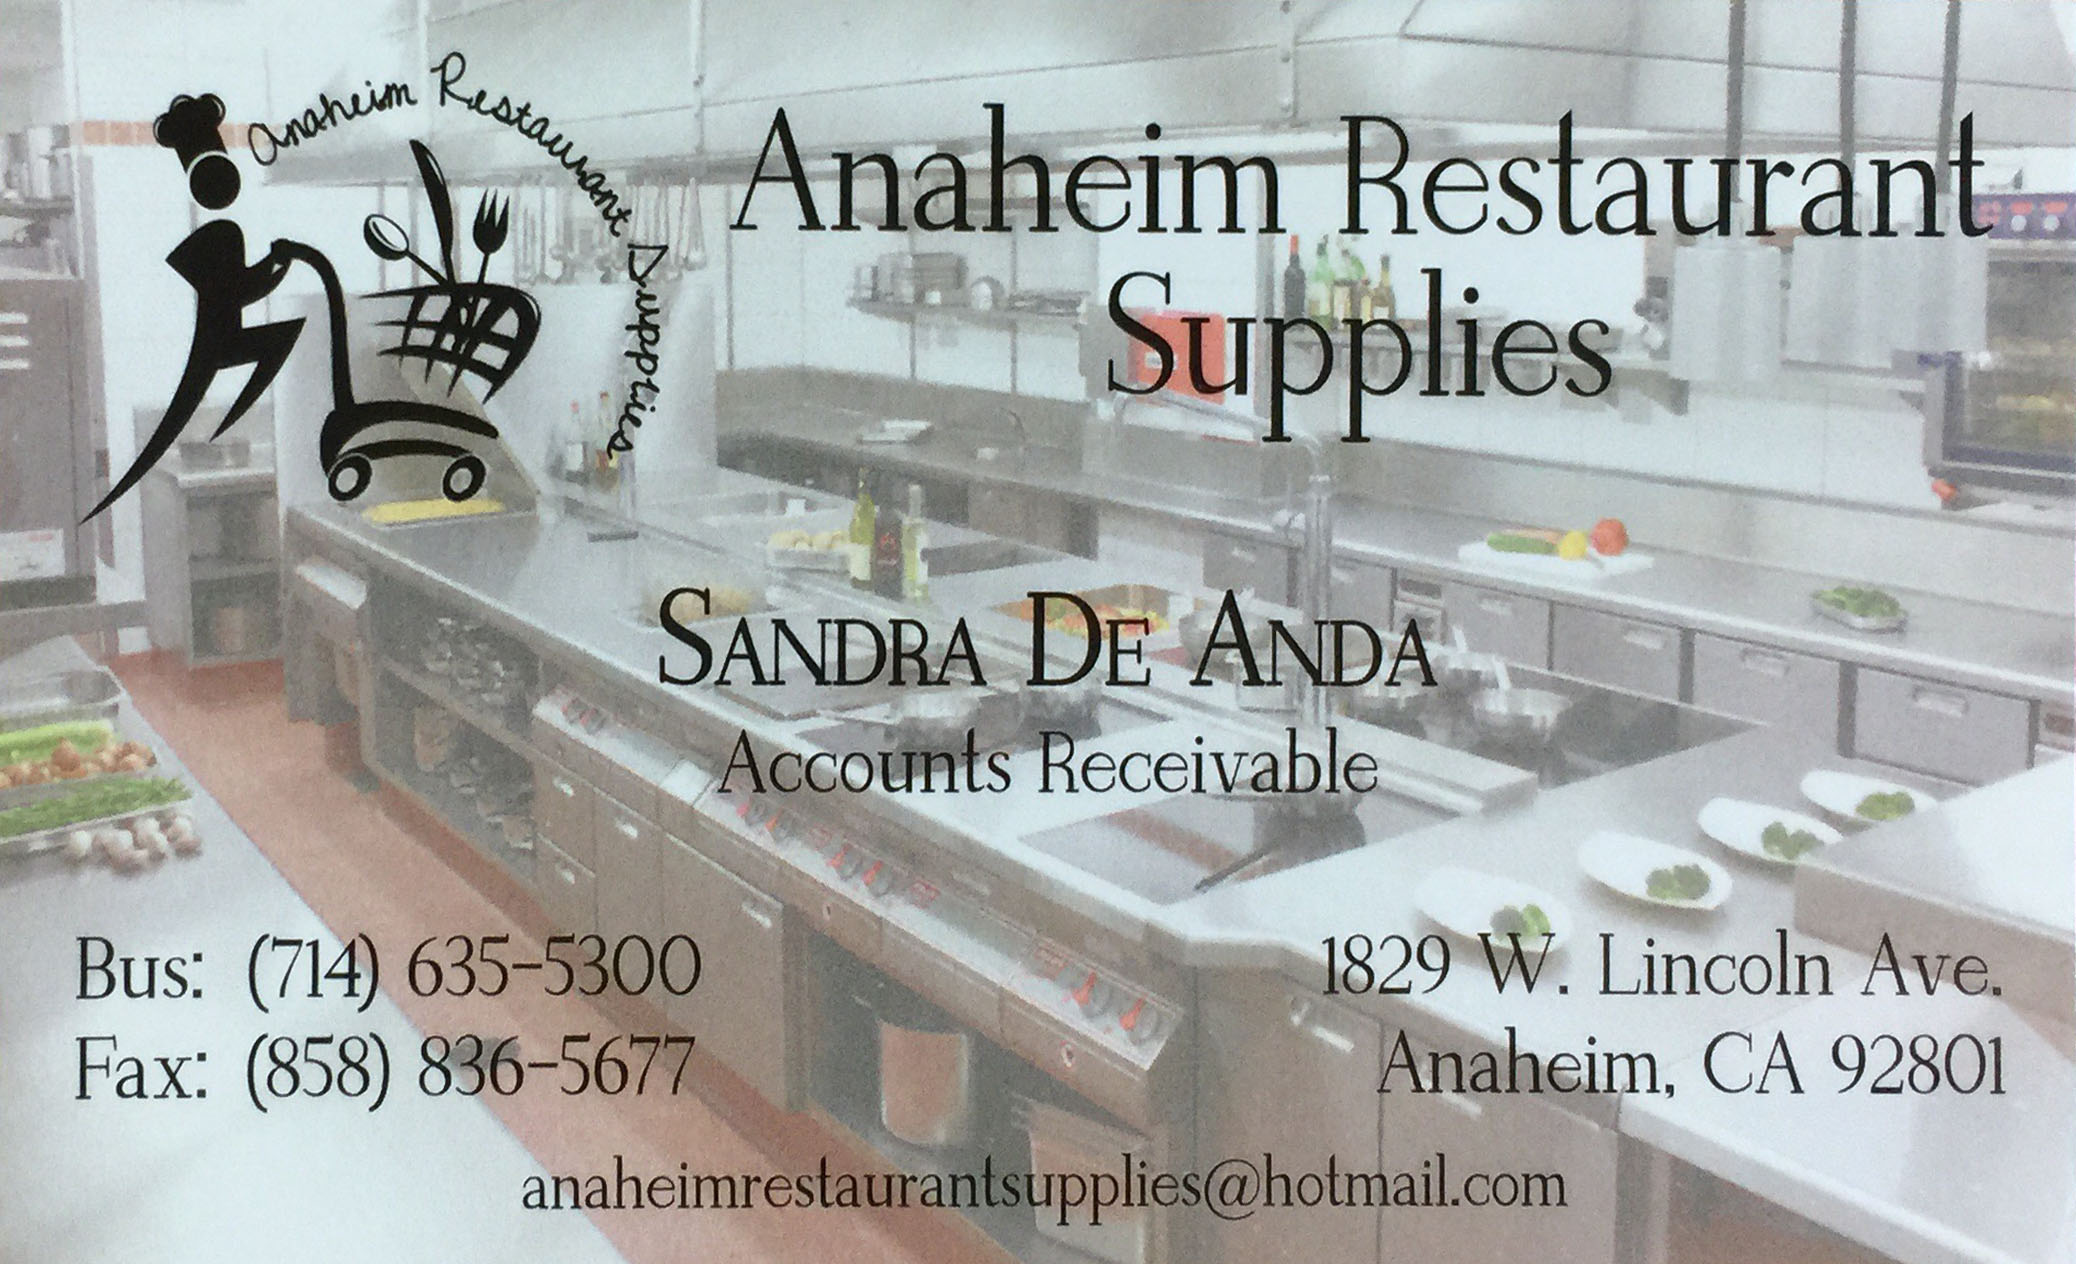 Anaheim Restaurant Supplies